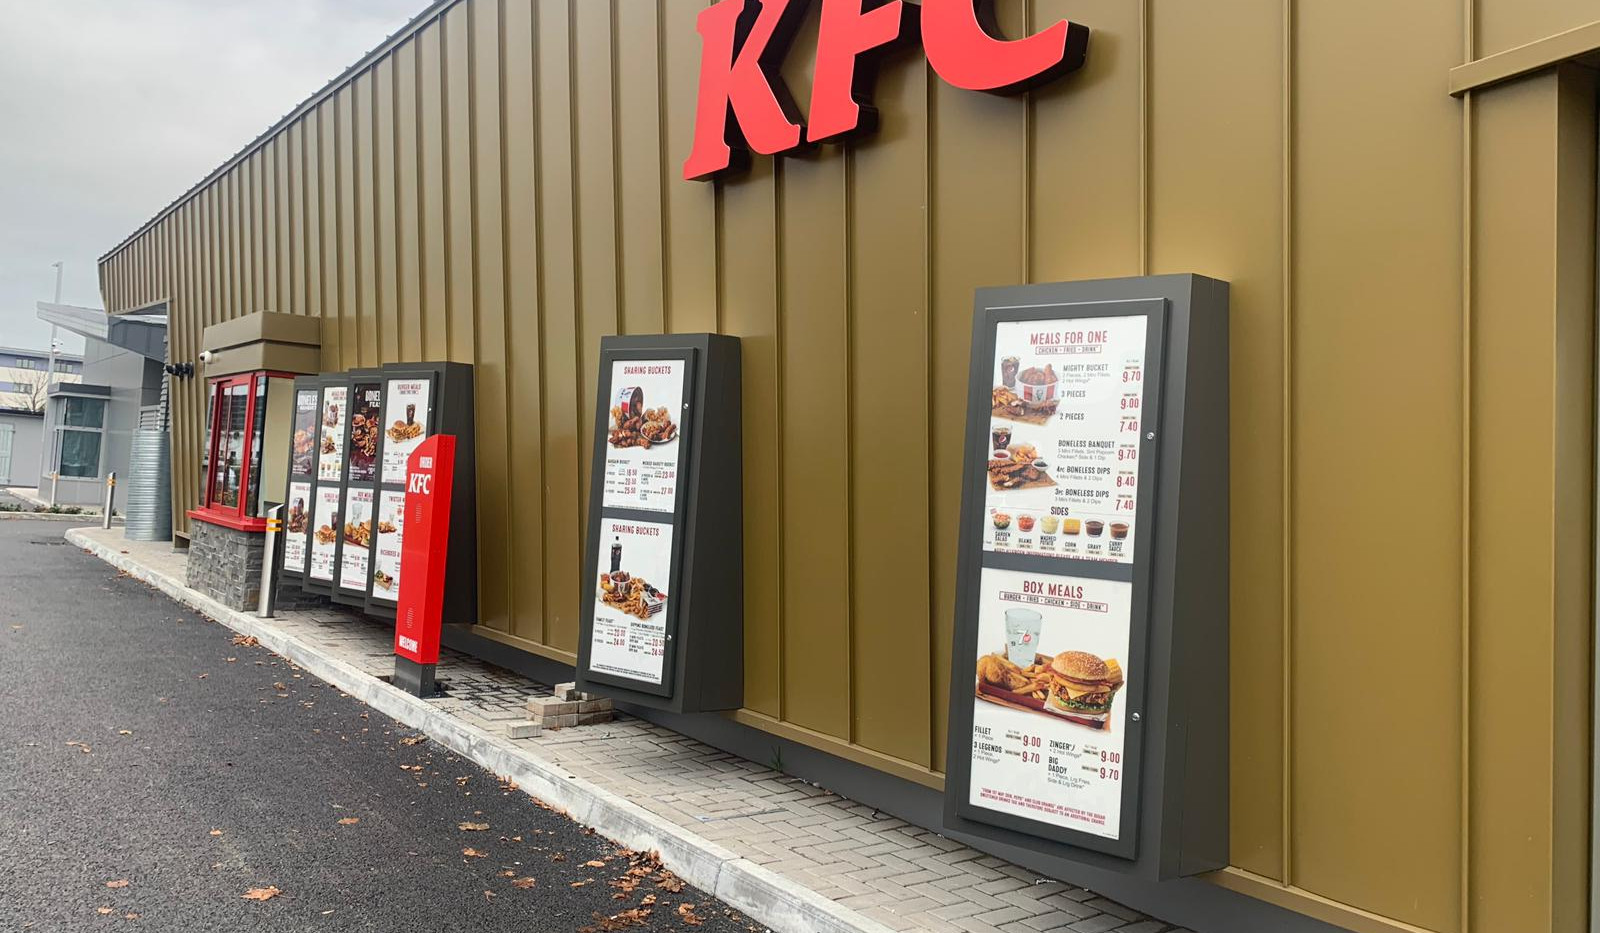 KFC Liffey Valley 6